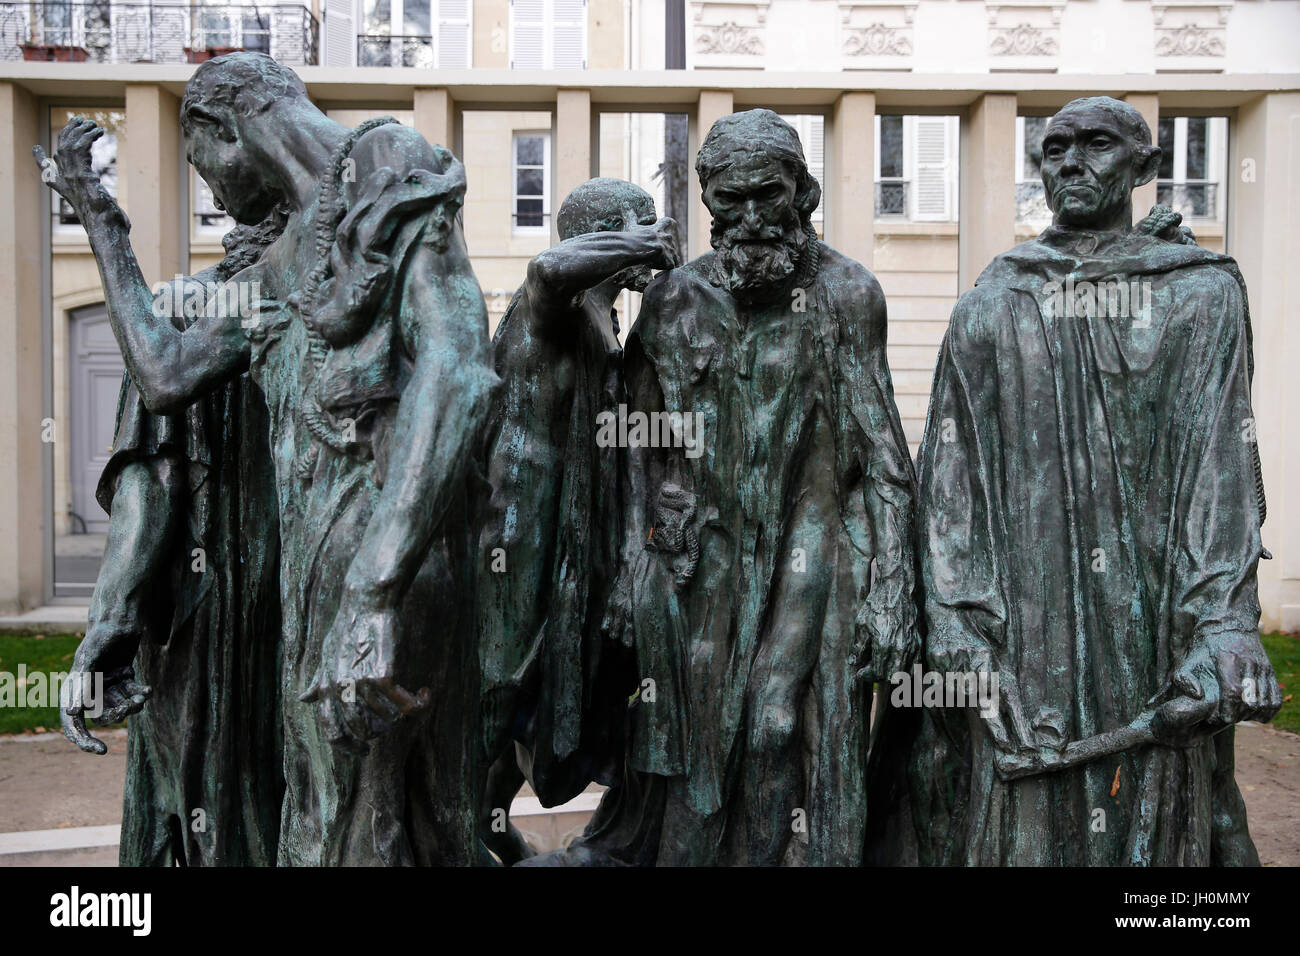 Rodin museum, Paris. Monument to the burghers of Calais. 1889.   France. - Stock Image